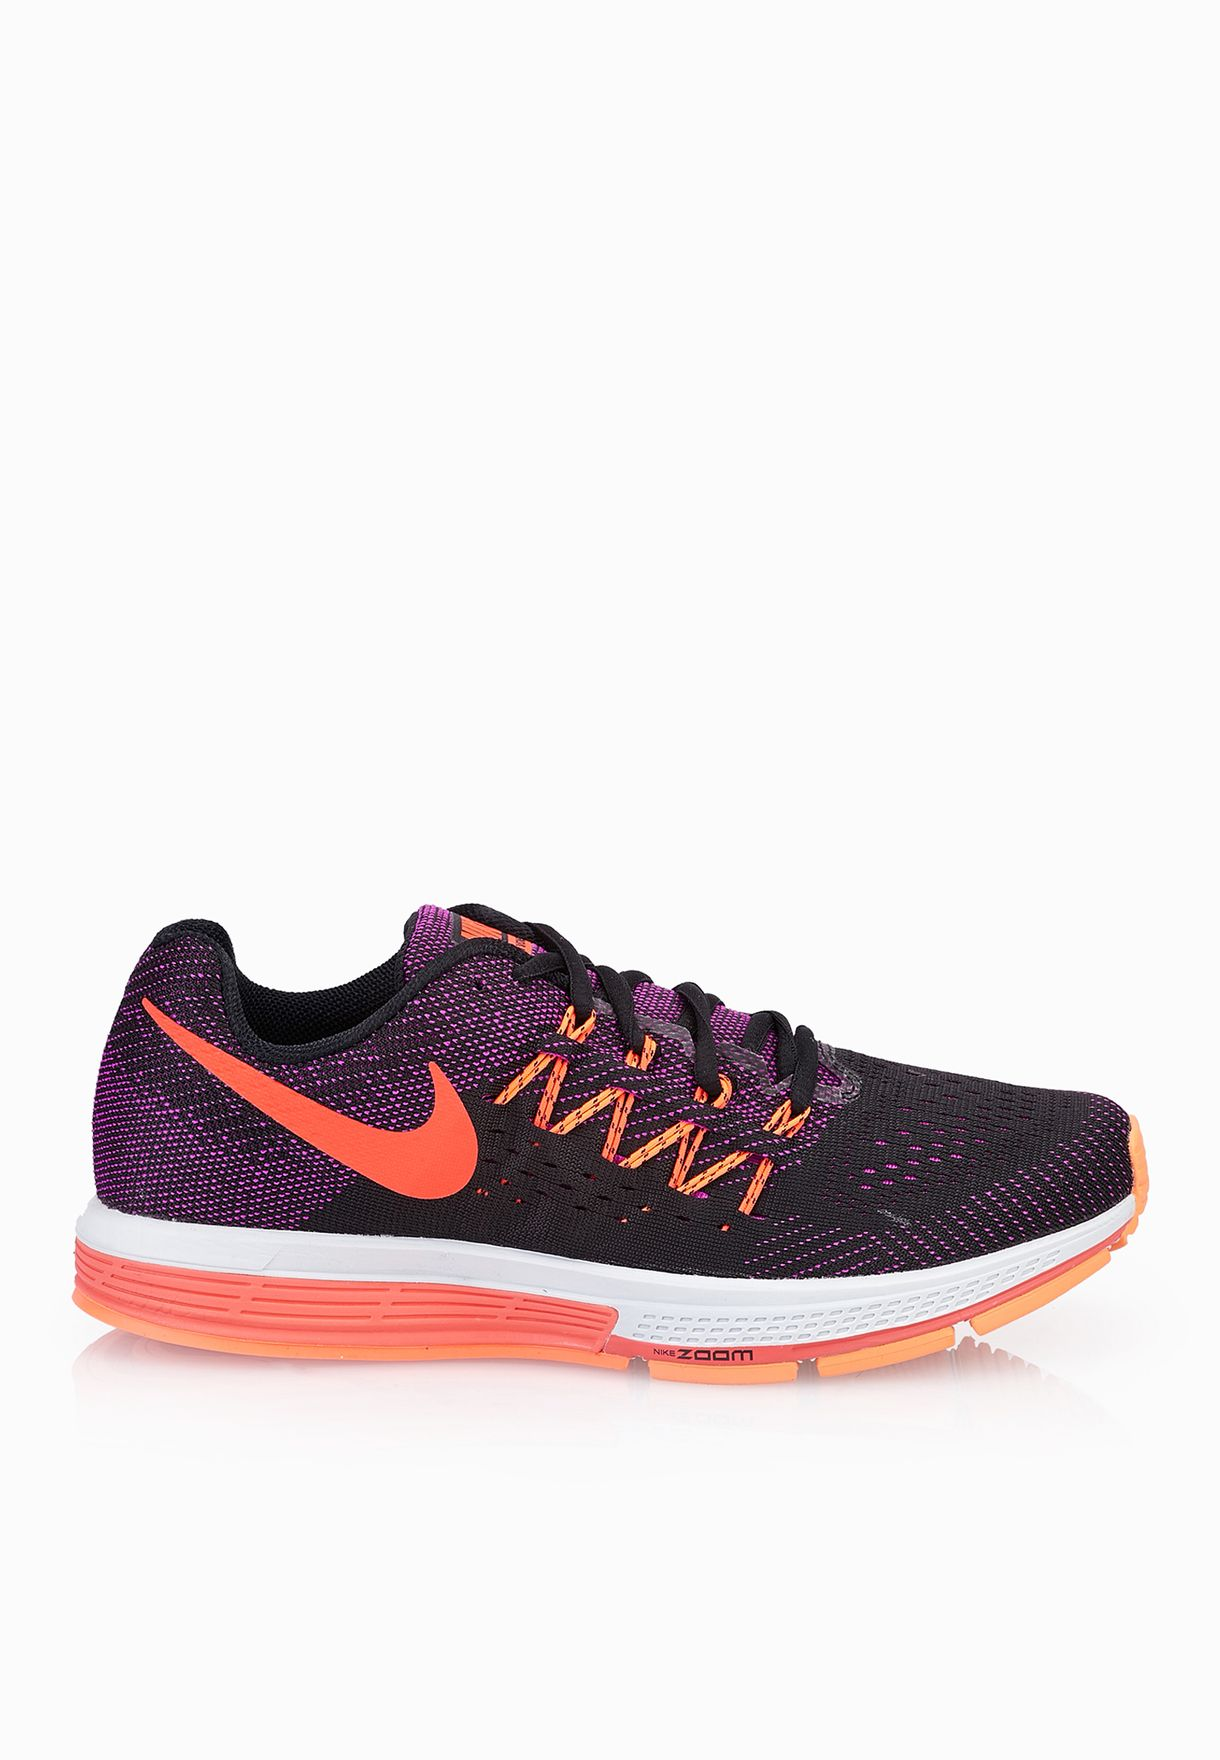 c0c799f3fbf Shop Nike black Air Zoom Vomero 10 717441-506 for Women in UAE ...